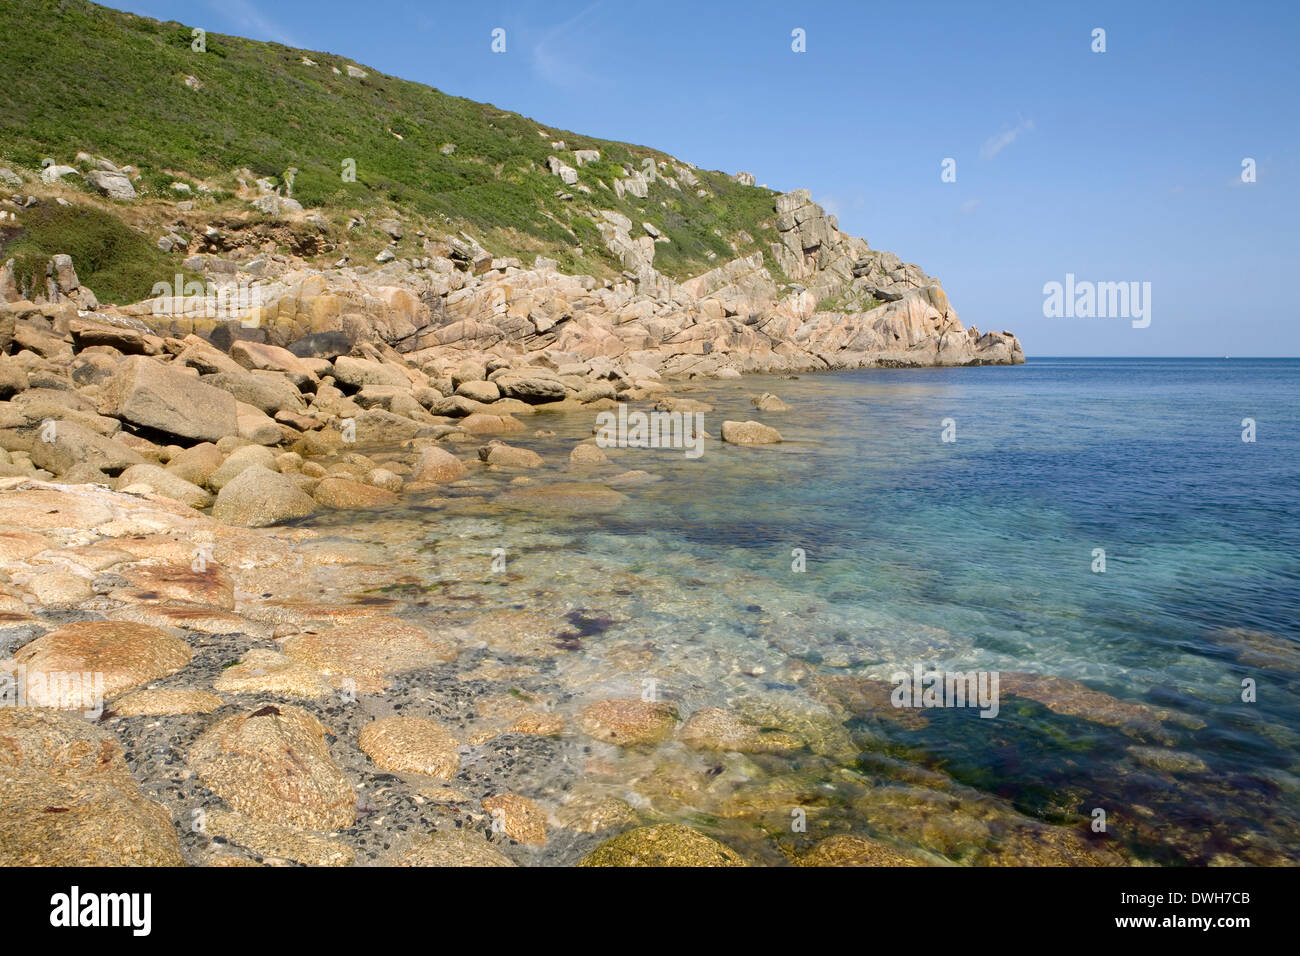 Round boulders cover the cove bed on a sunny summer day at Penberth Cove, Cornwall, England Stock Photo